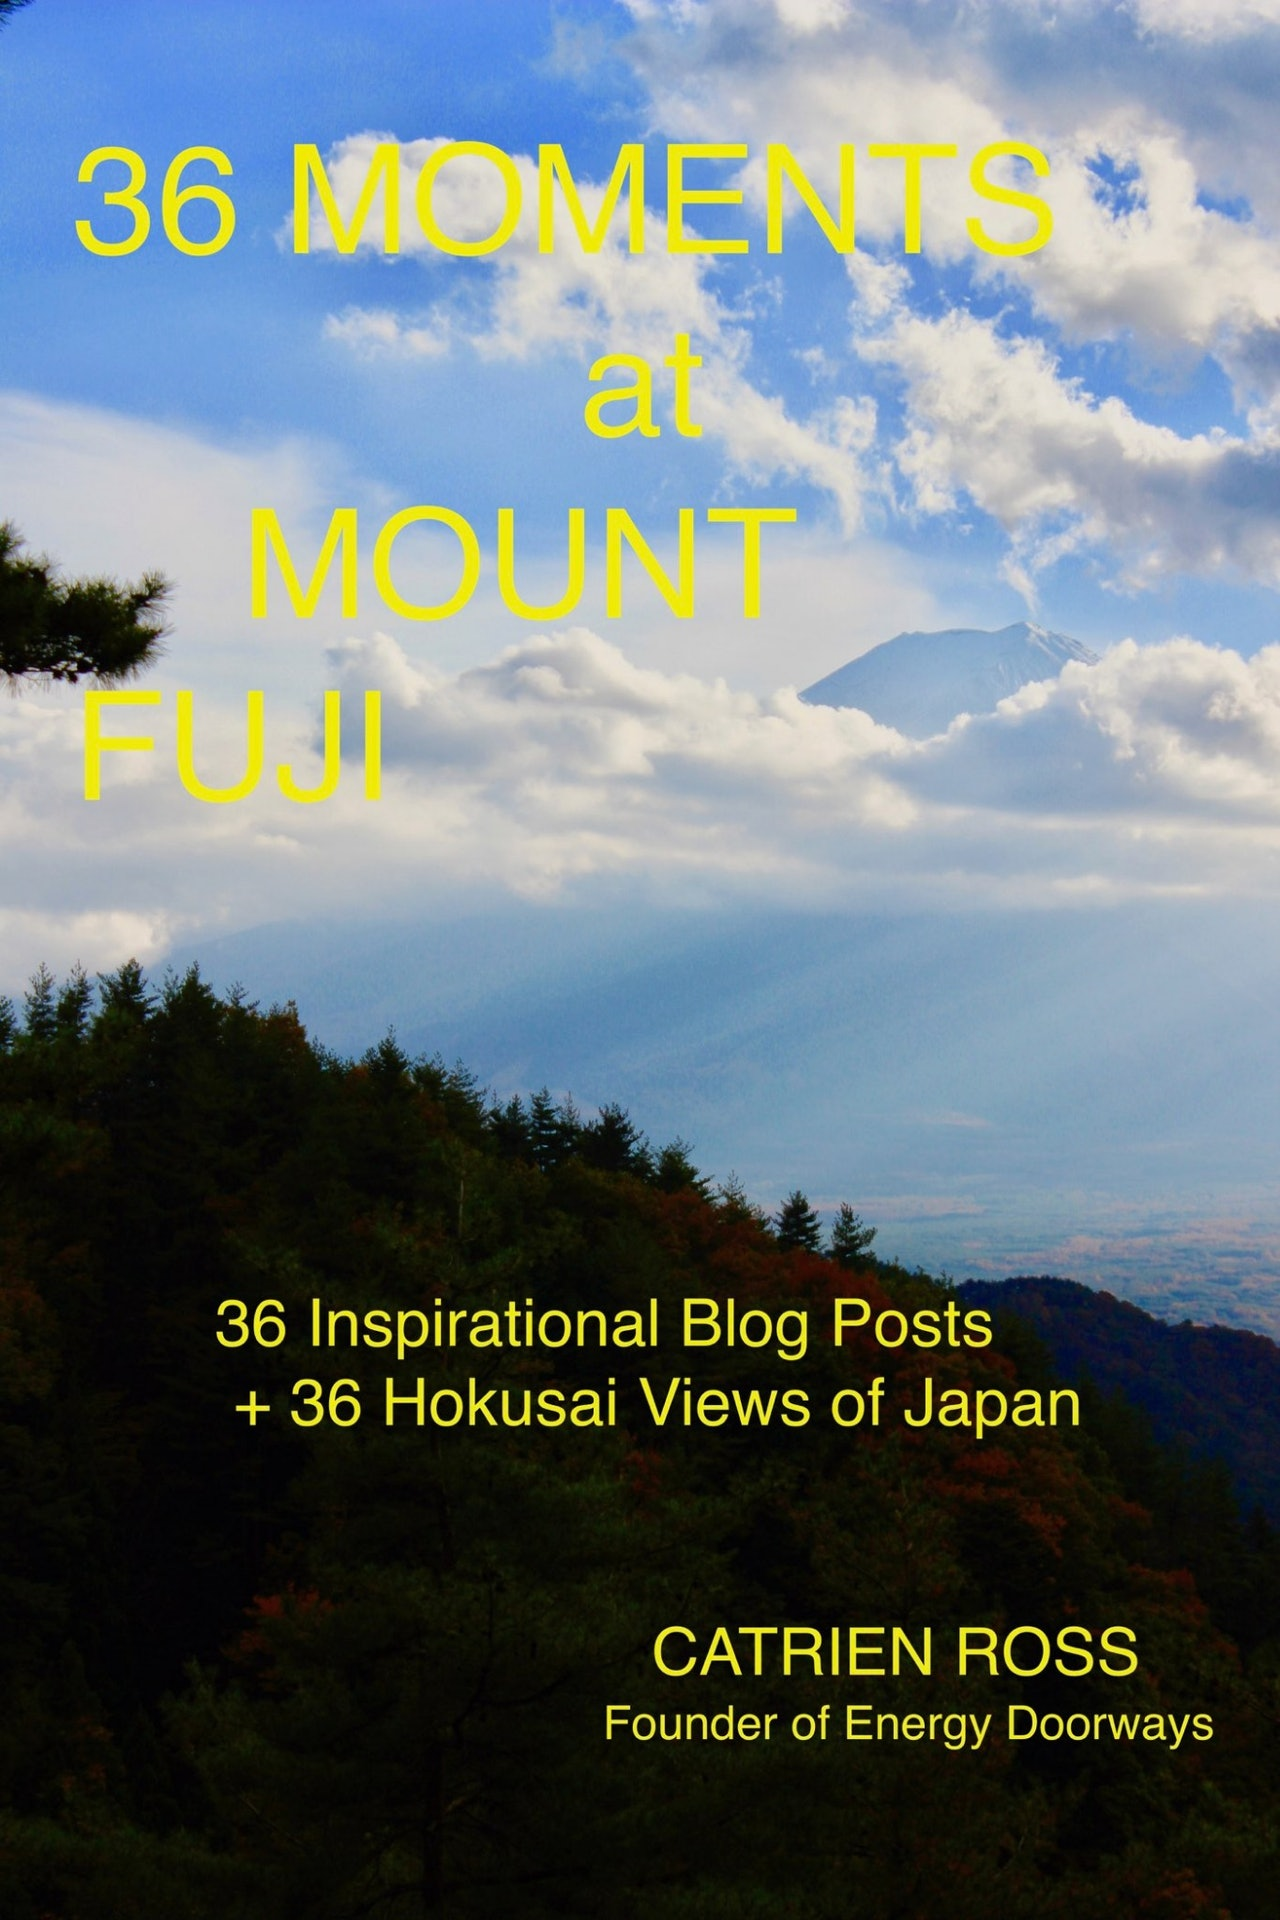 36 Moments at Mount Fuji